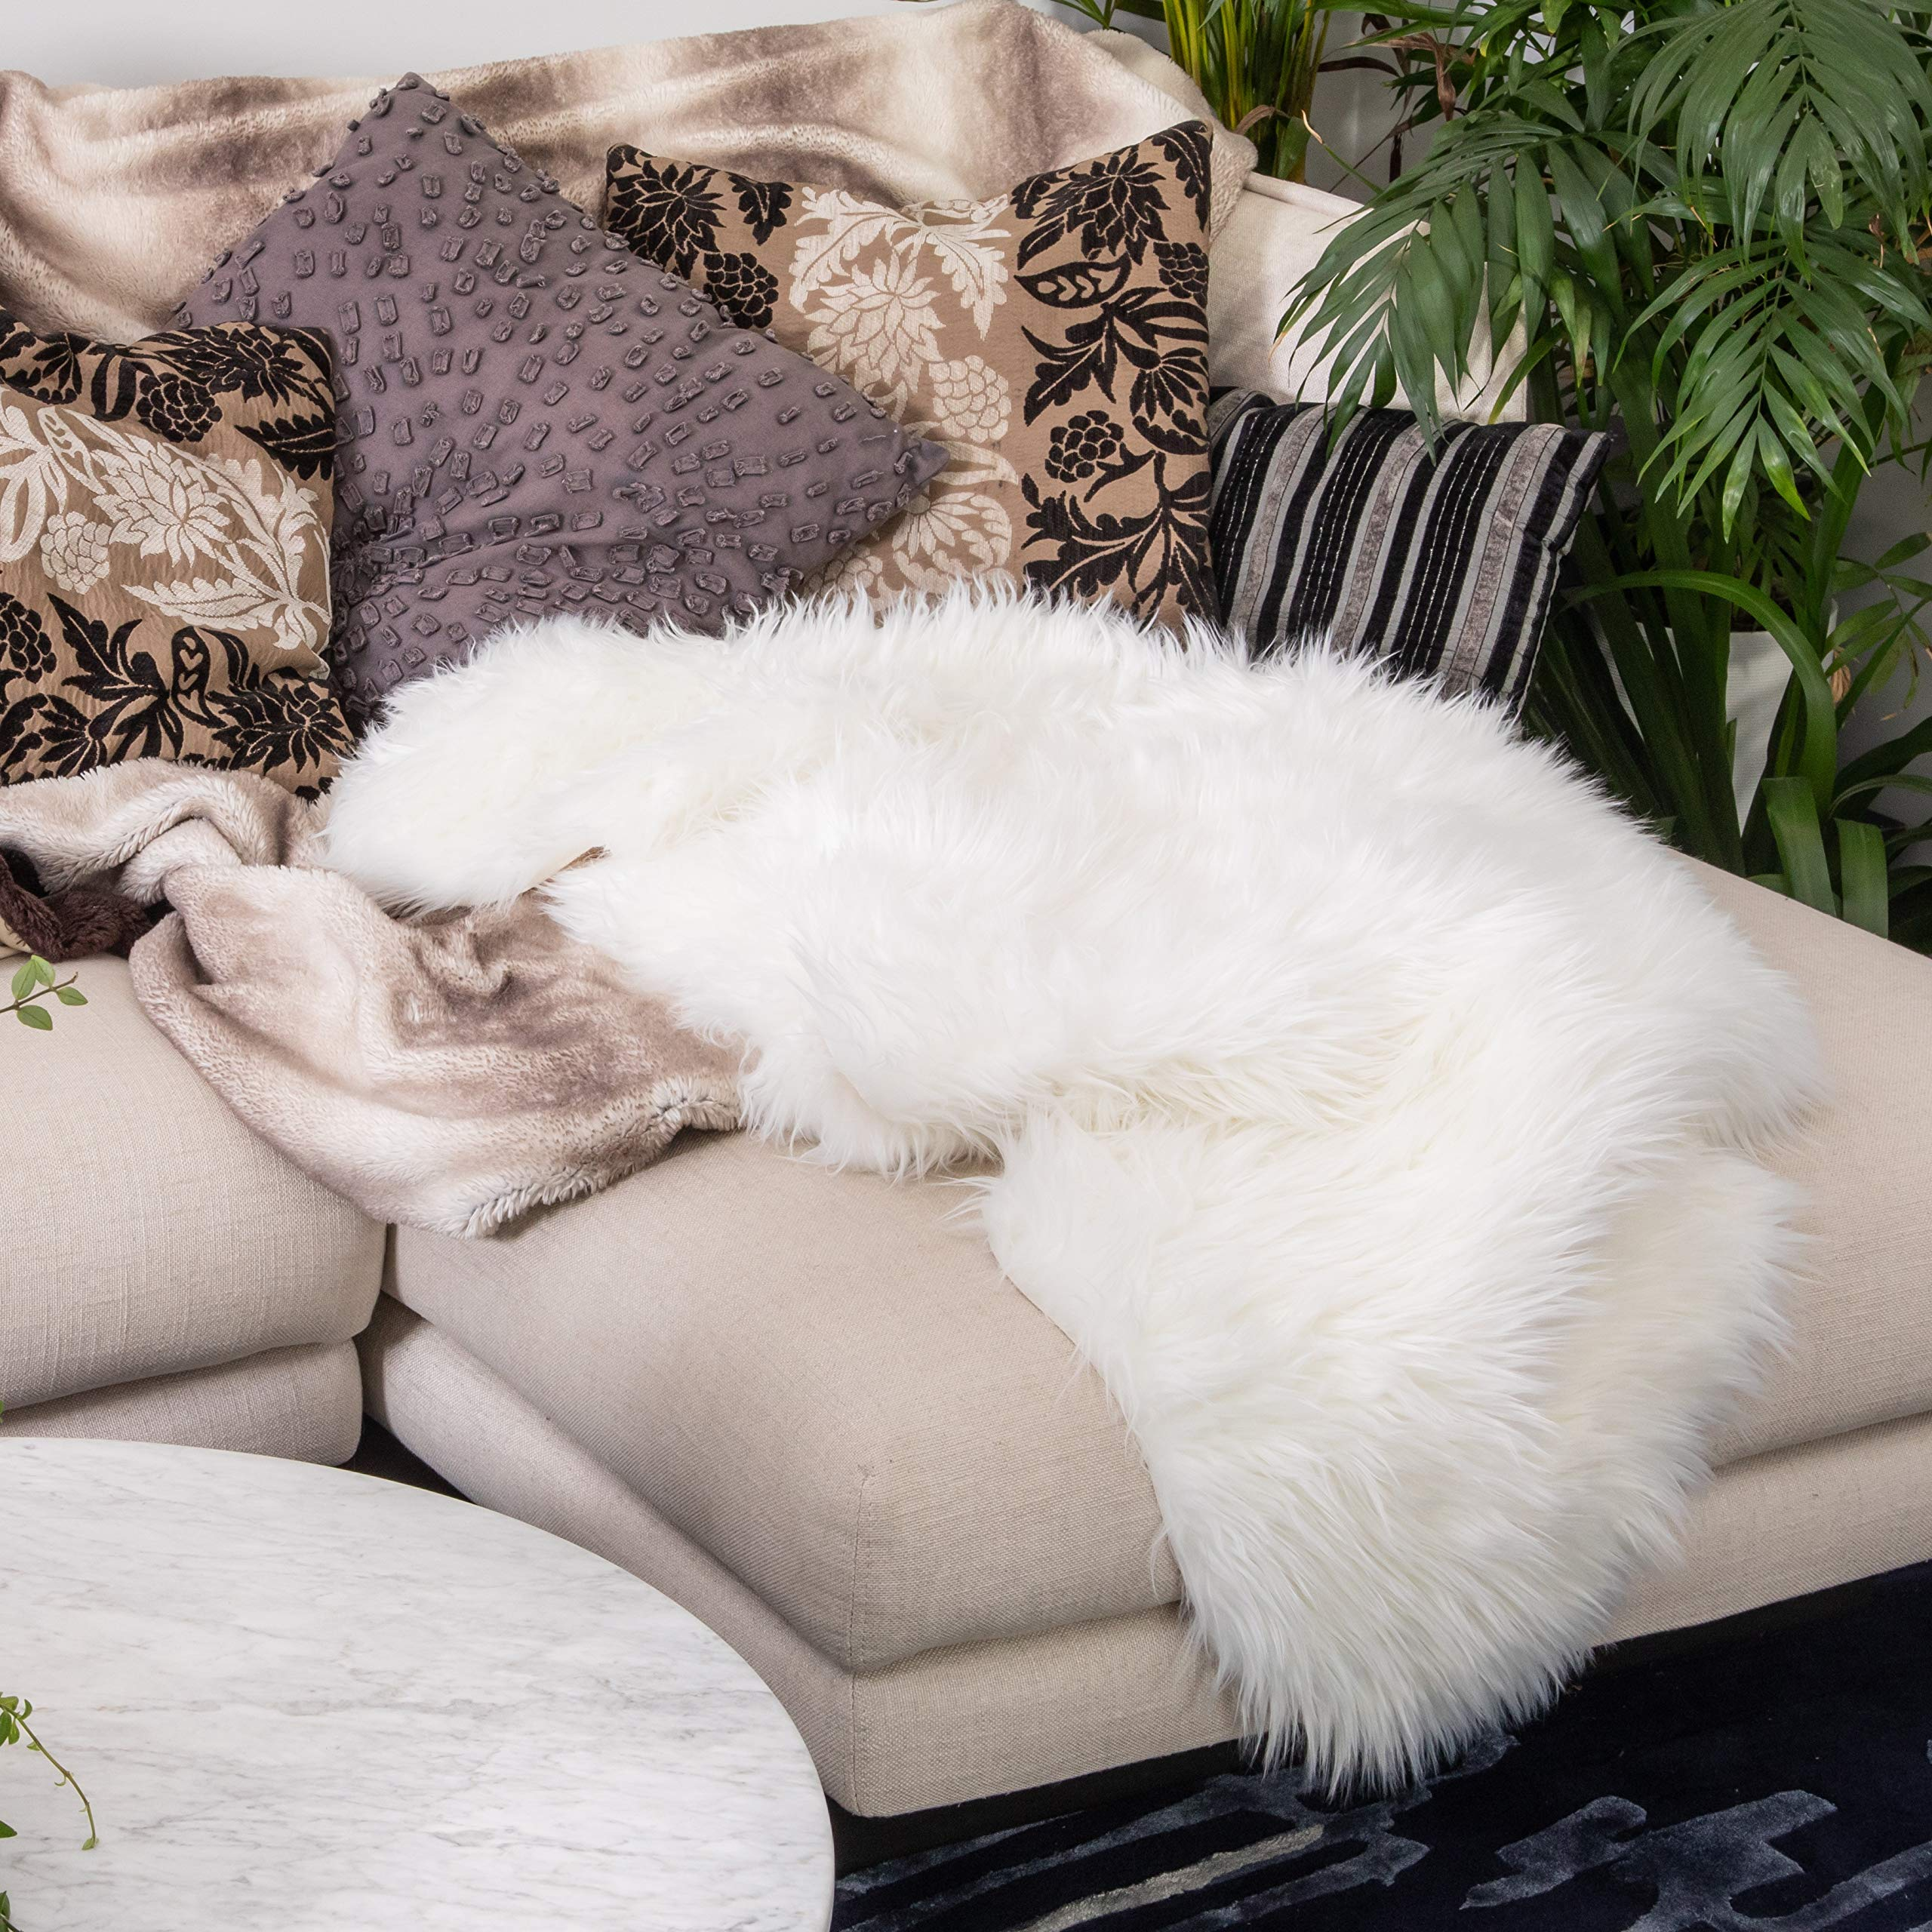 Decorative Throw Rug/Blanket, Faux Fur Sheepskin, Ivory White - Furry Soft Throw with Non-Slip Suede-Like Backing - Animal Cruelty Free, Fur Rug, Cover for Area, Stool, Chair, Couch, Bed - Cloud